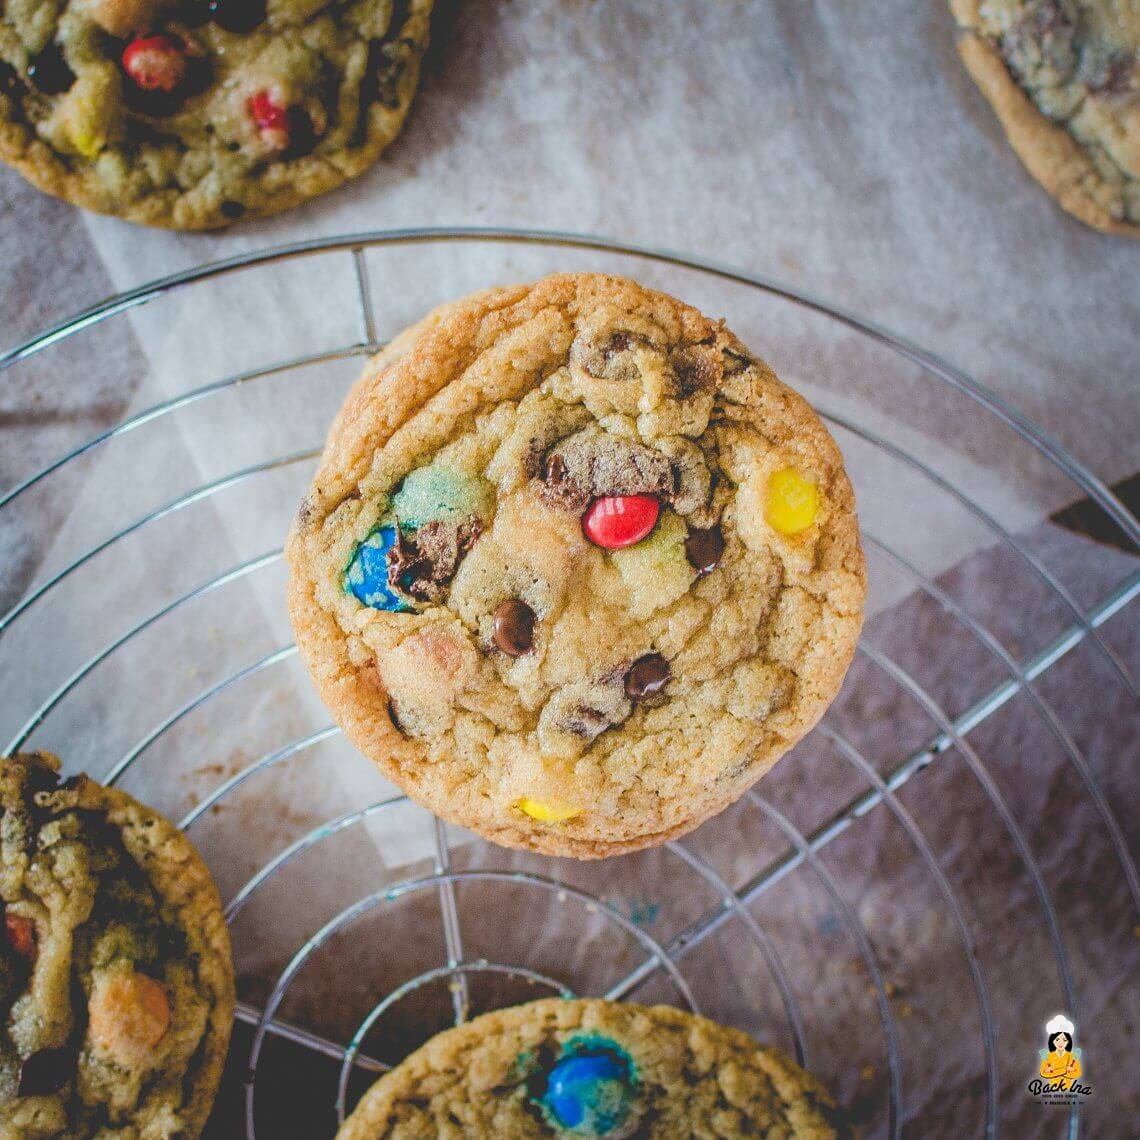 Rainbow Cookies (Chocolate Chip Cookies mit M&Ms / Smarties)